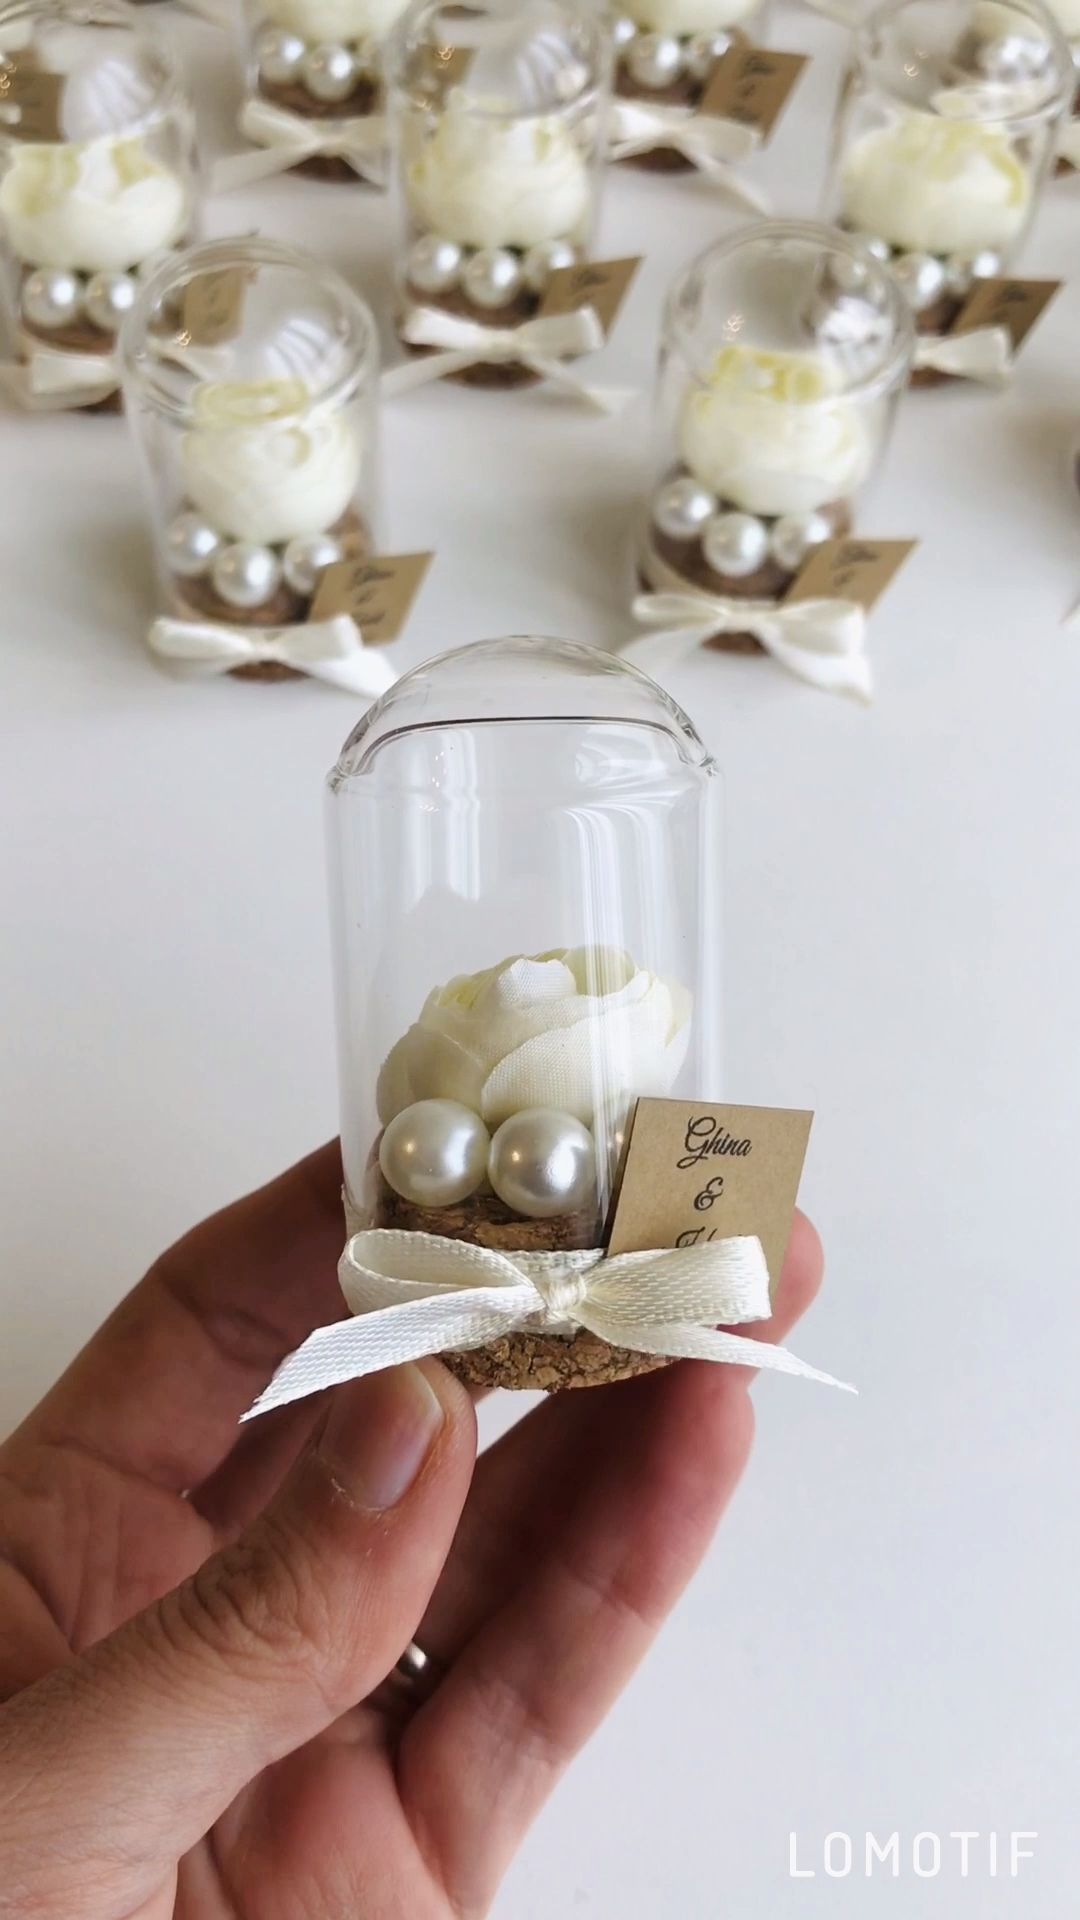 10pcs Rose Dome Bell Jar Favors, Wedding Favors For Guests, Beauty & the Beast Favors, Bridal shower Favor, White Favors, Ivory Party Favors